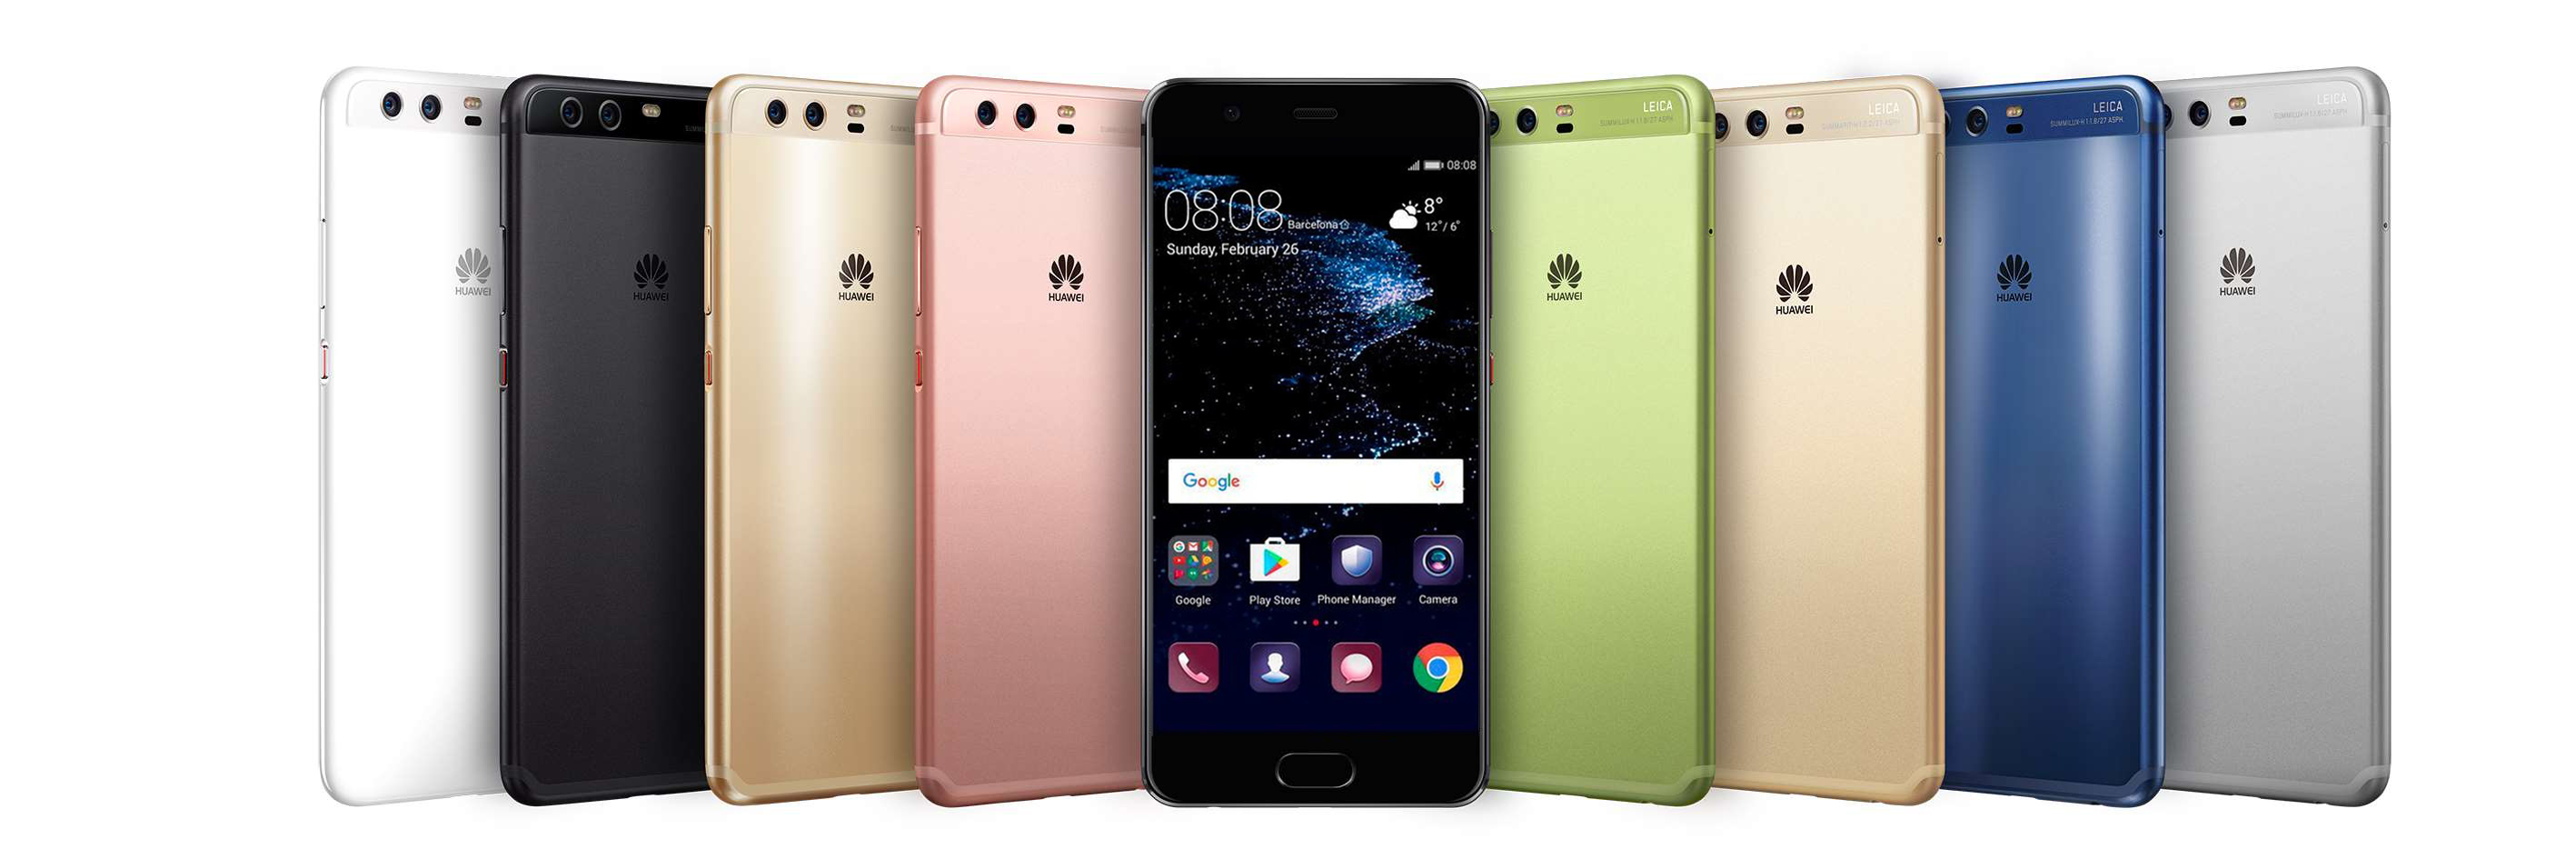 Marie_Levi_Huawei-P10_all-colors